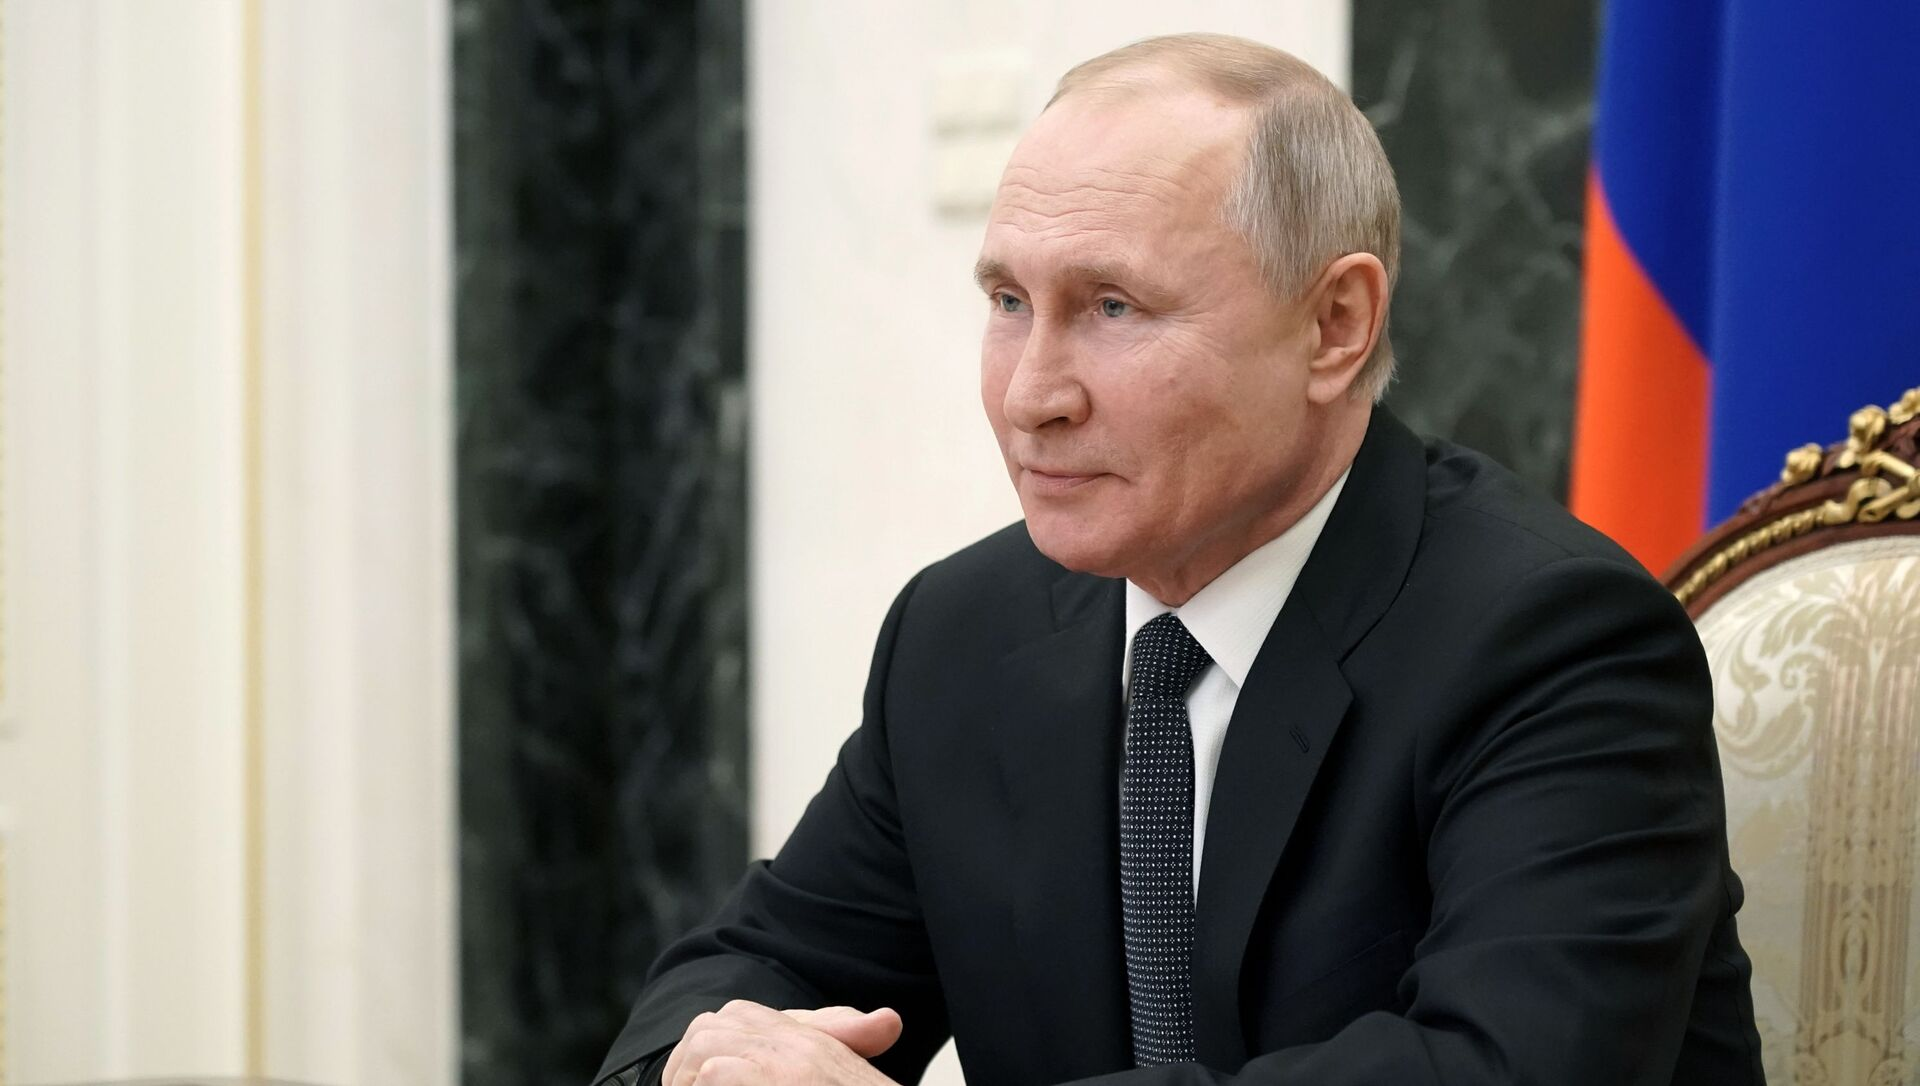 February 26, 2021. Russian President Vladimir Putin is holding an operational meeting with permanent members of the Russian Security Council via videoconference. - Sputnik International, 1920, 18.06.2021